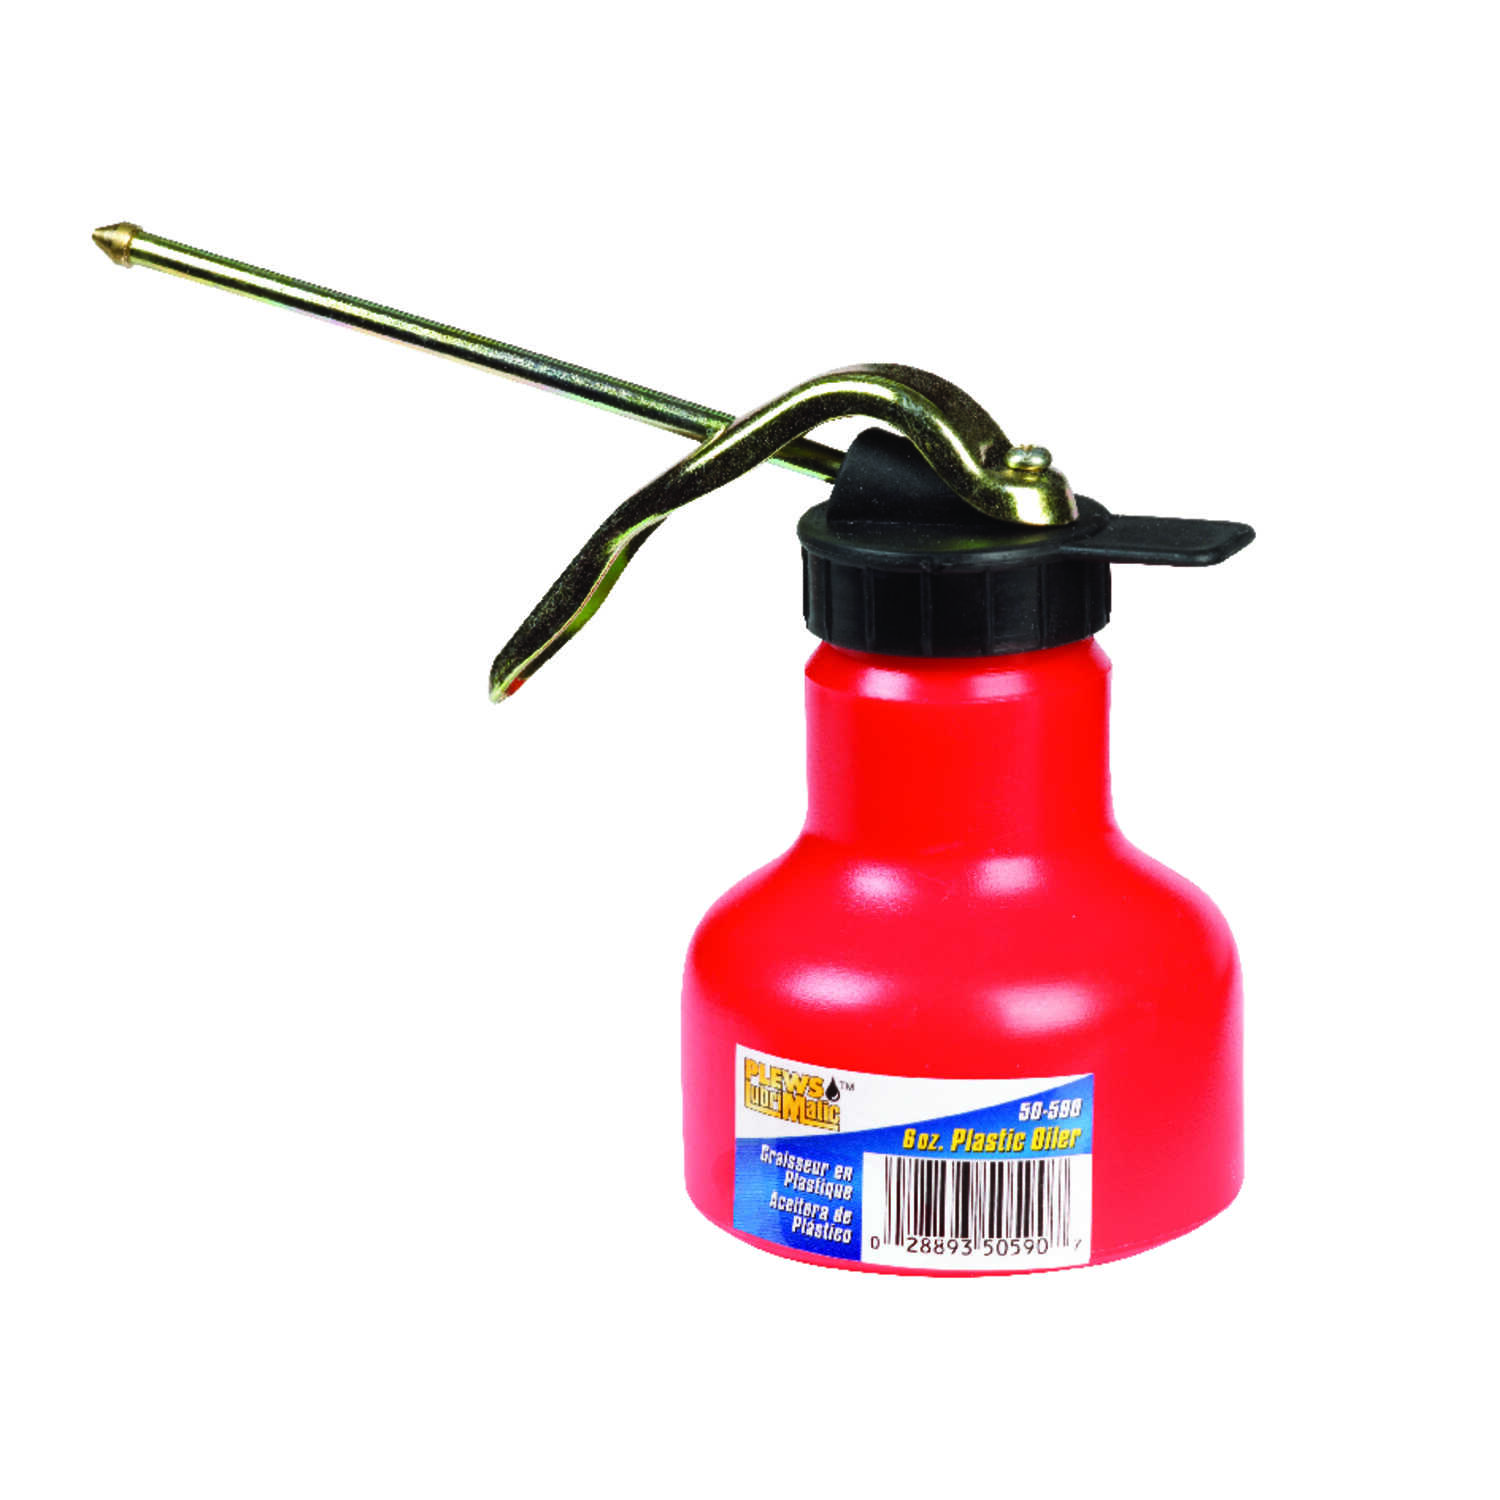 Plews  6 oz. Rigid Spout  Oil Can